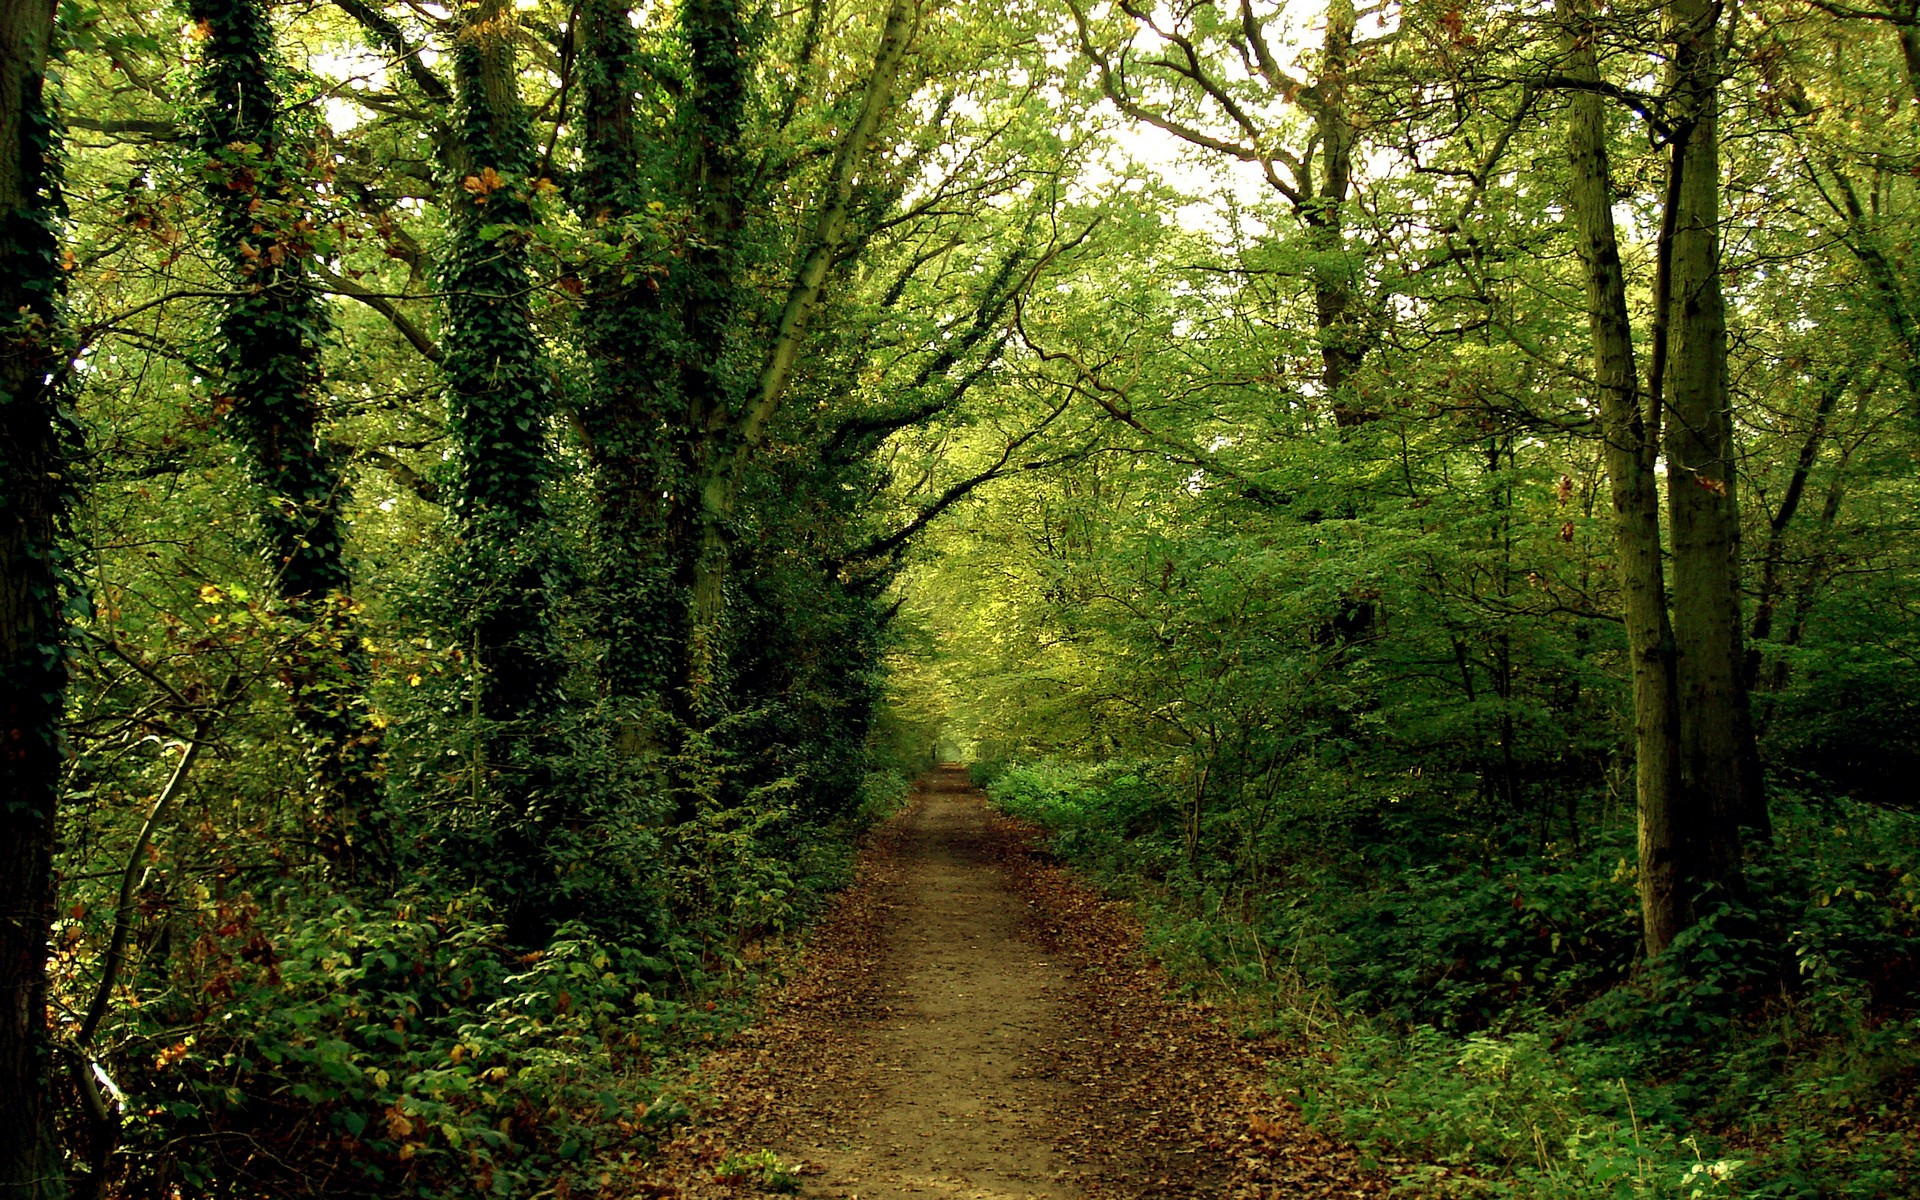 Green forests paths roads